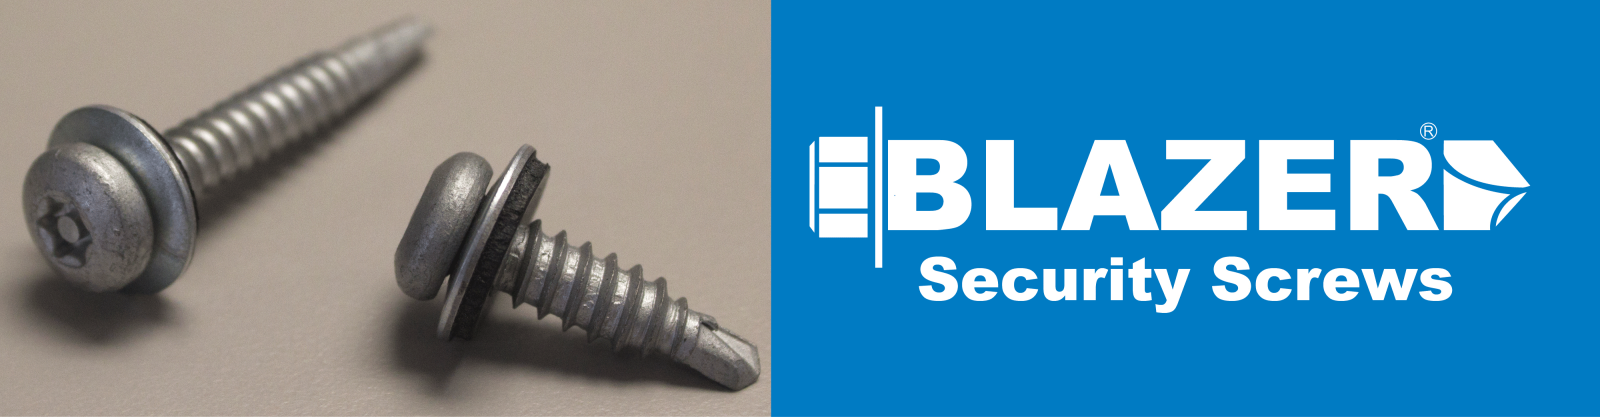 Blazer-Security-Screws-website-header2018.png